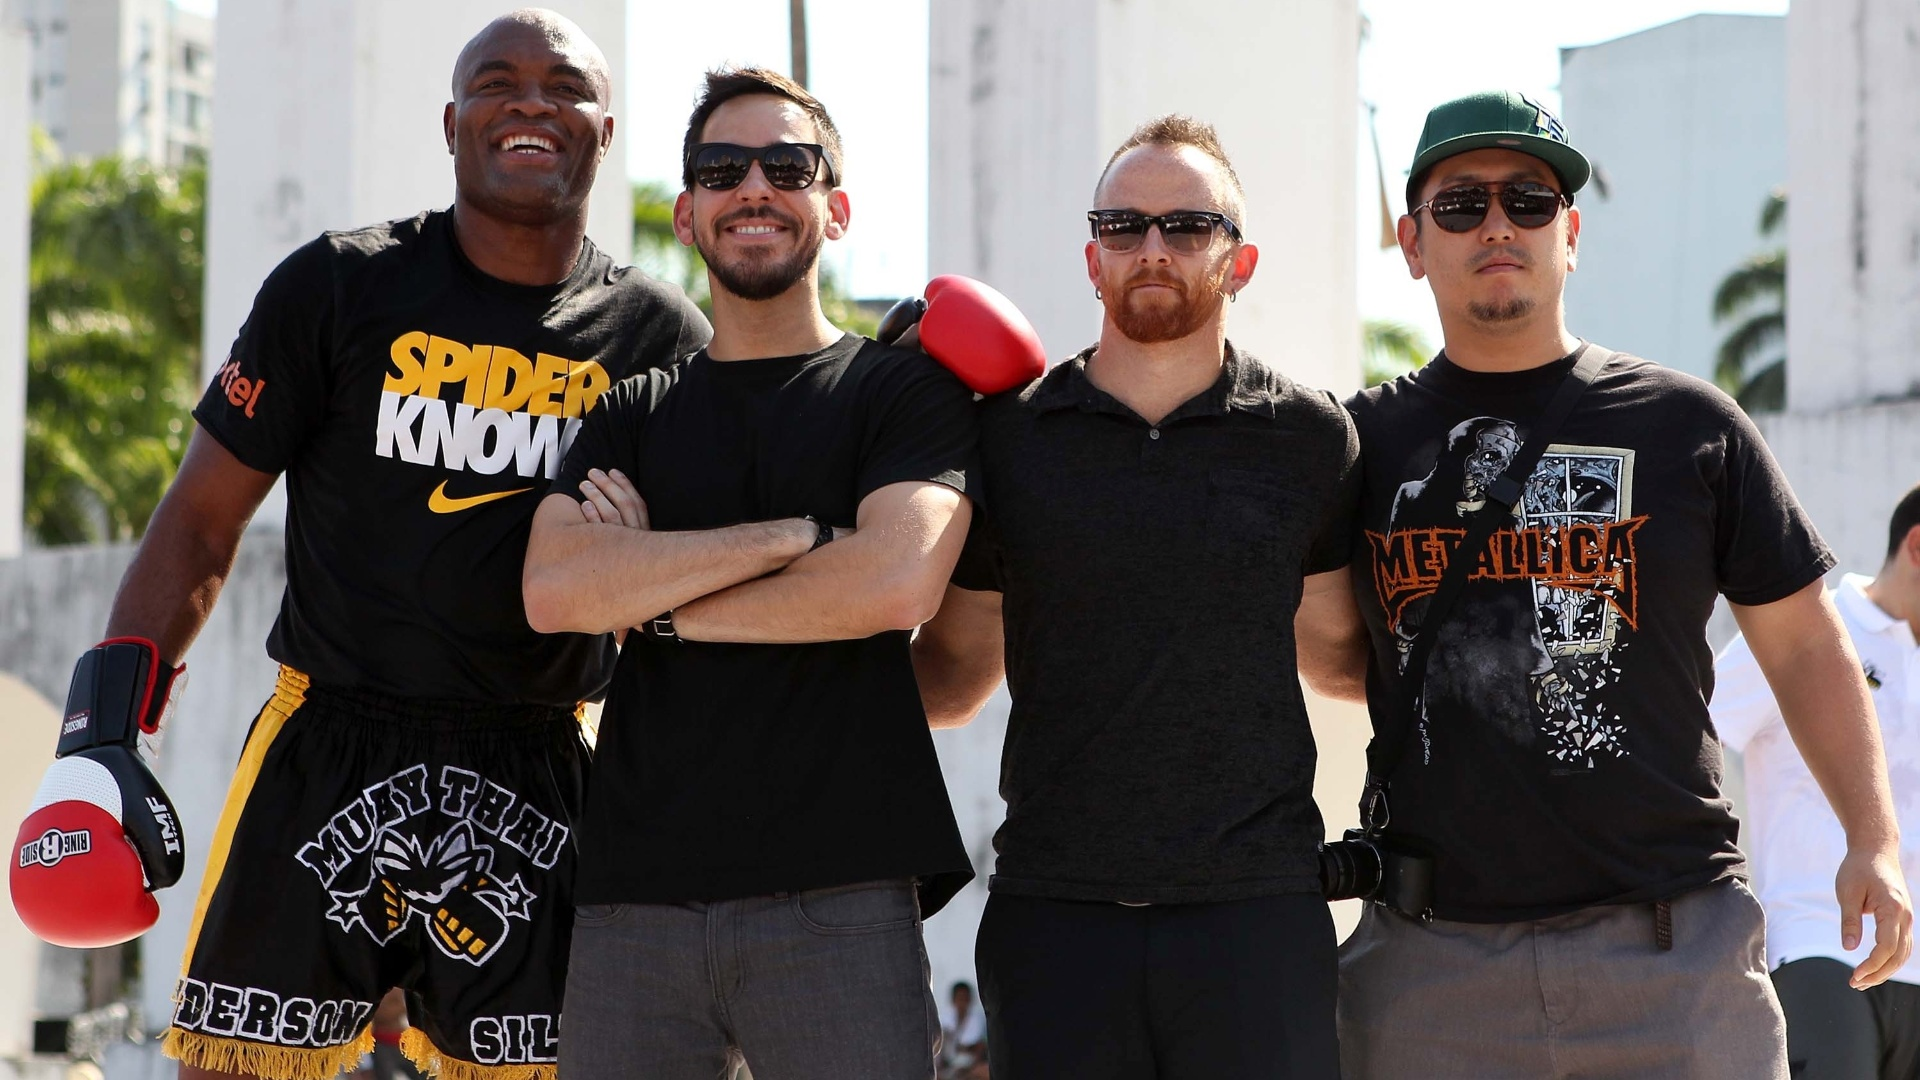 Anderson Silva posa com integrantes da banda de rock Linkin Park durante treino aberto do UFC Rio 3 nos Arcos da Lapa (10/10/2012)